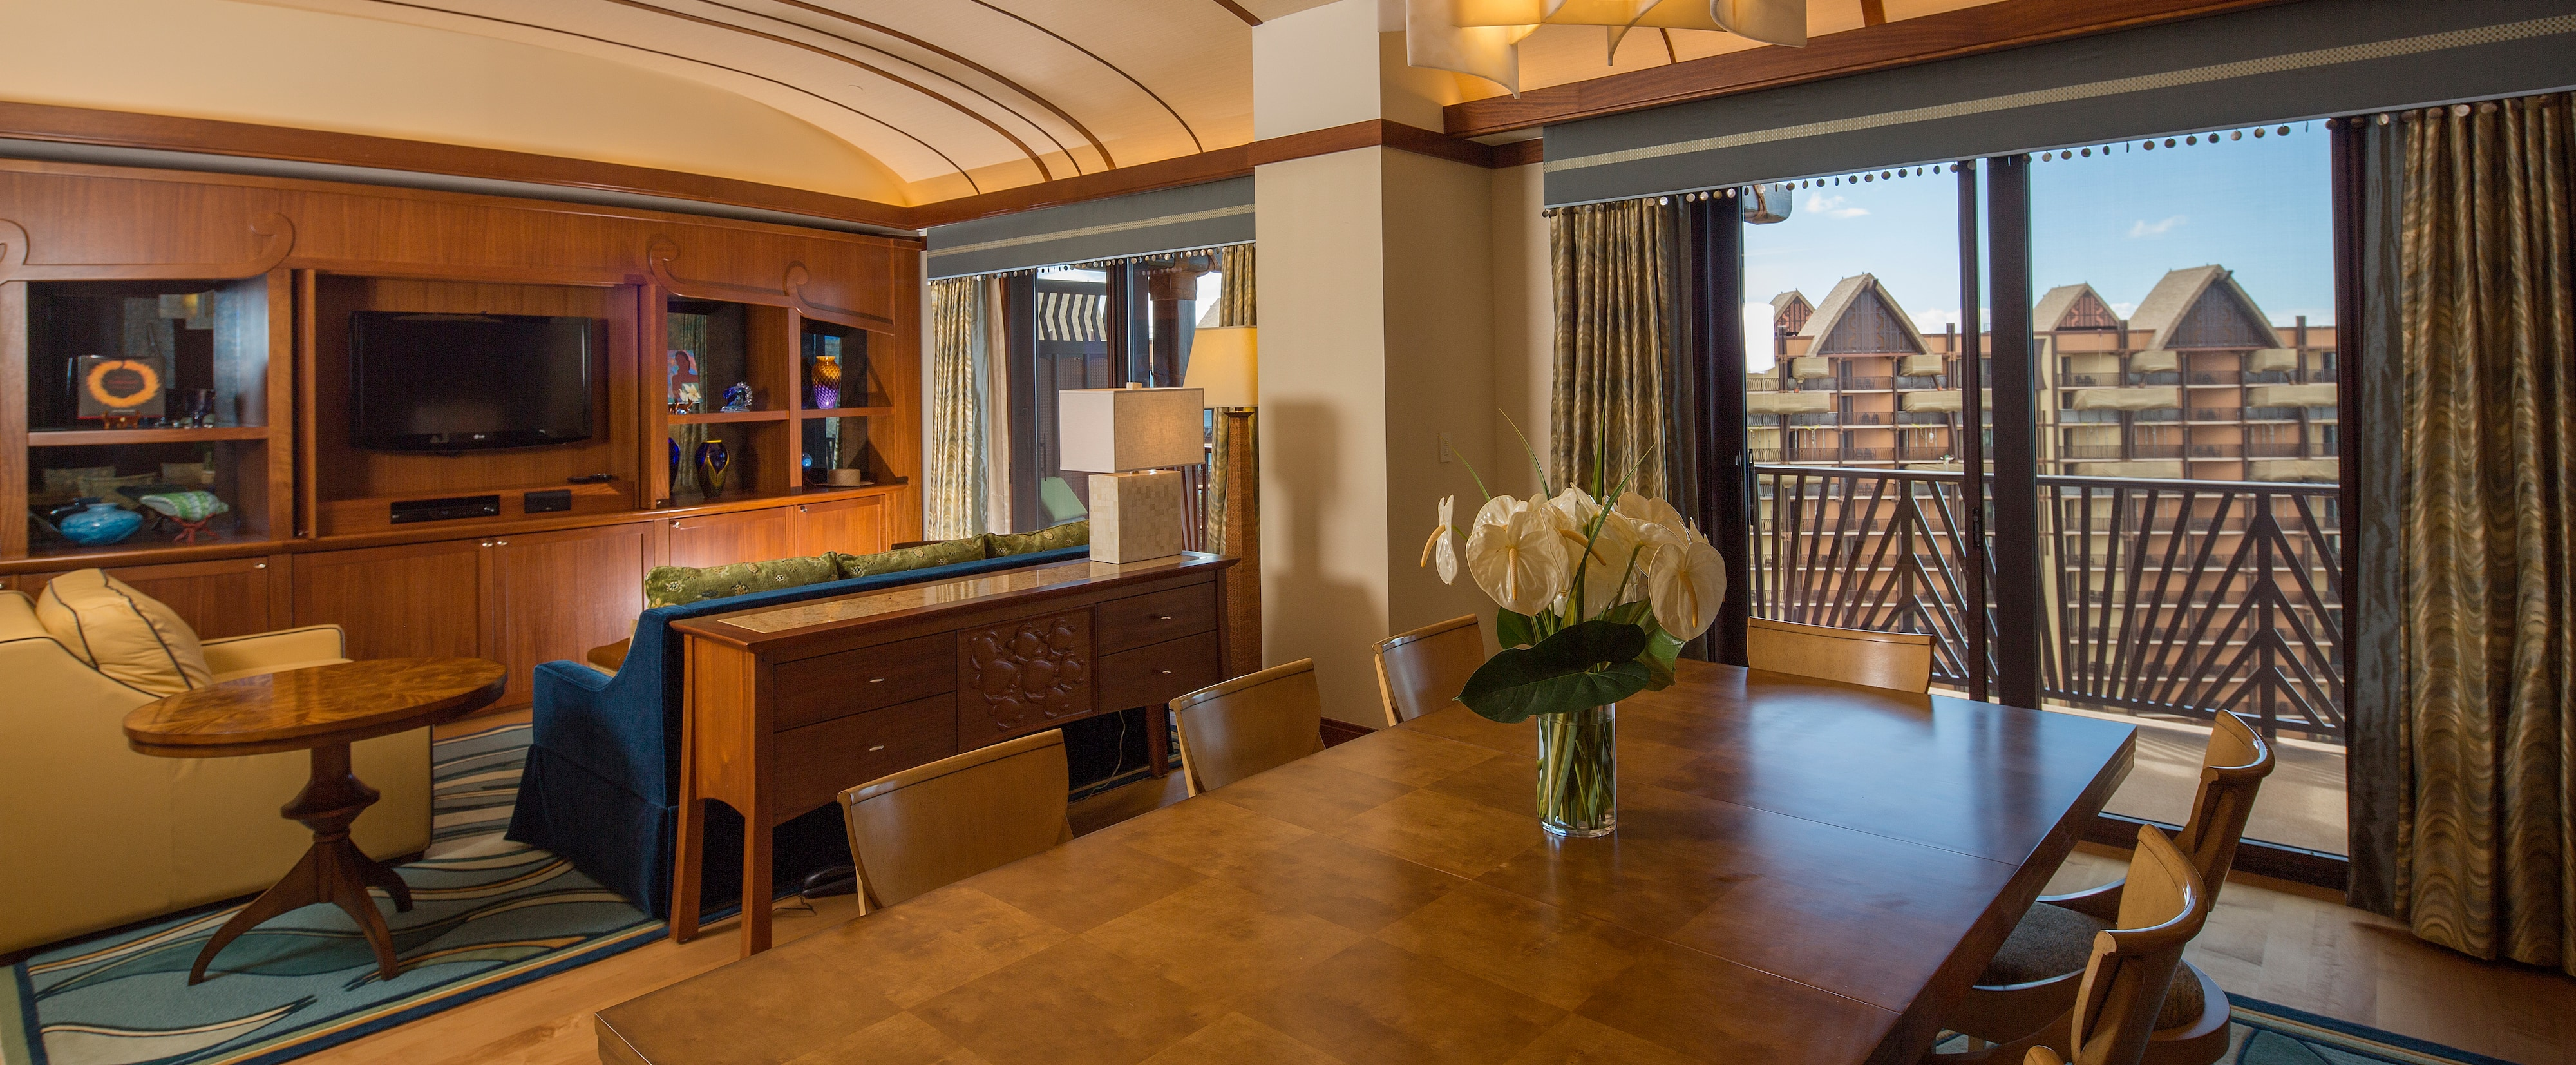 The living area, dining area and balcony of the Deluxe 1-Bedroom Suite